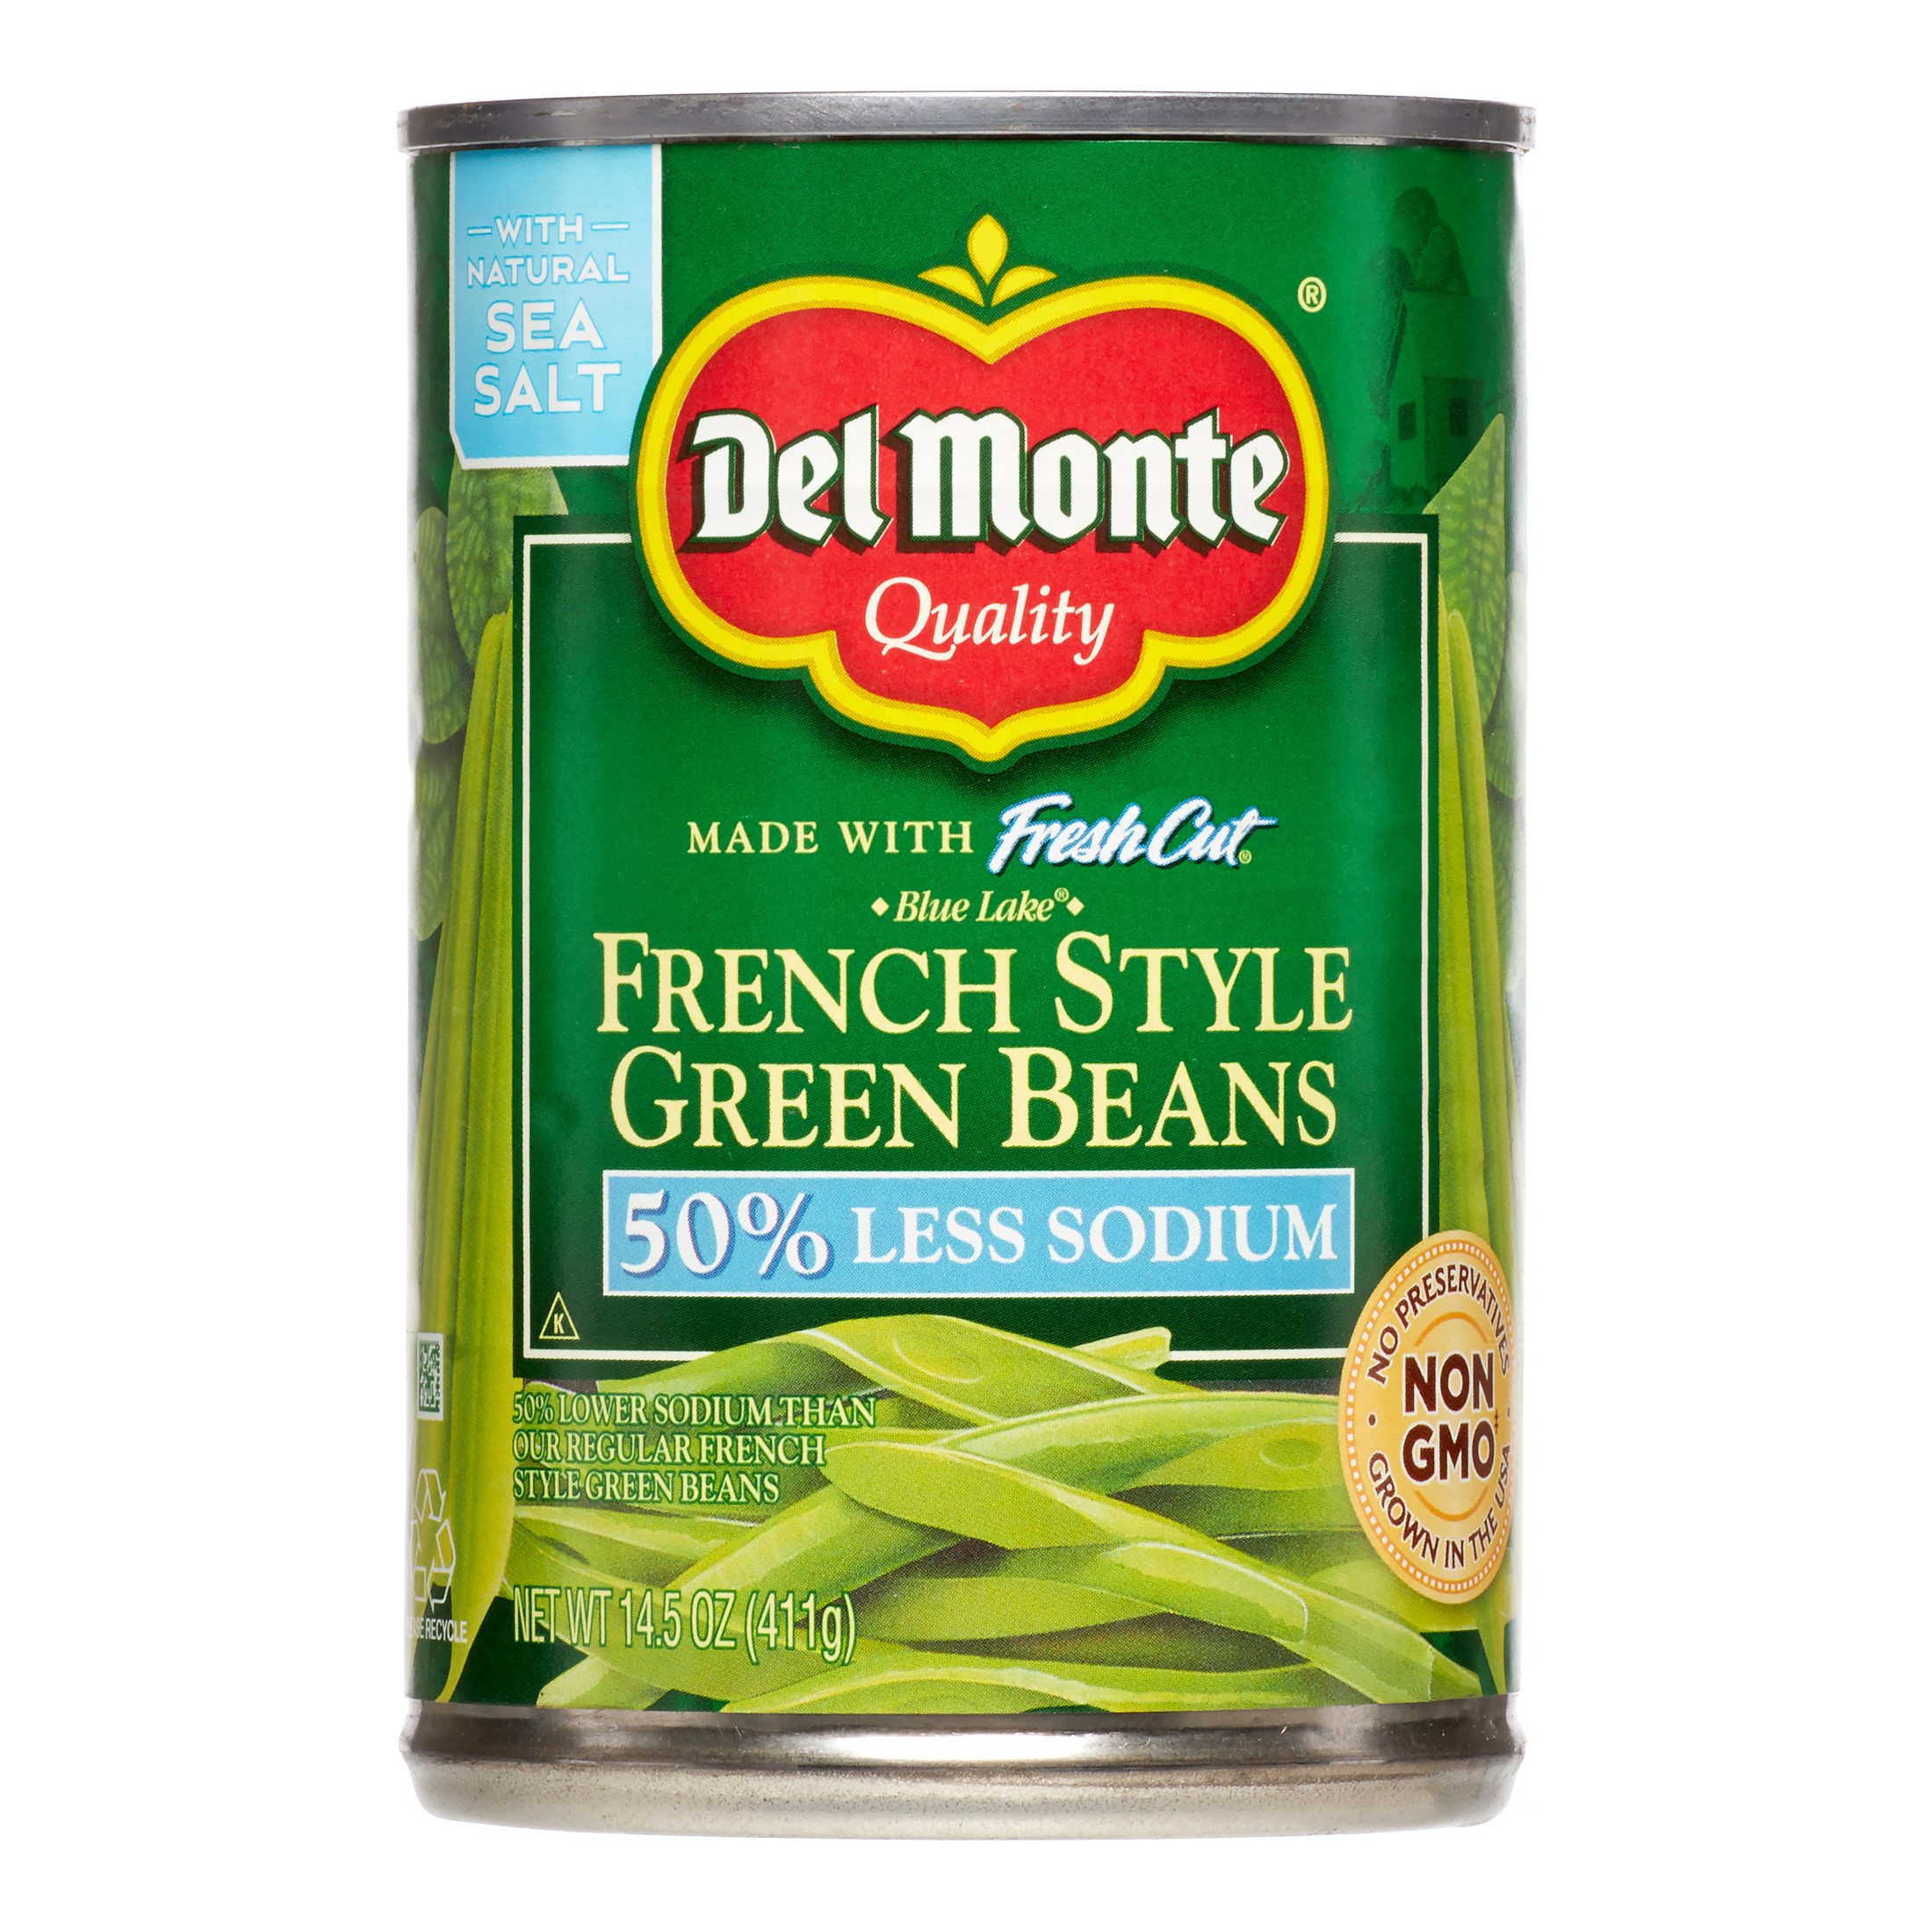 French Style Canned Green Beans